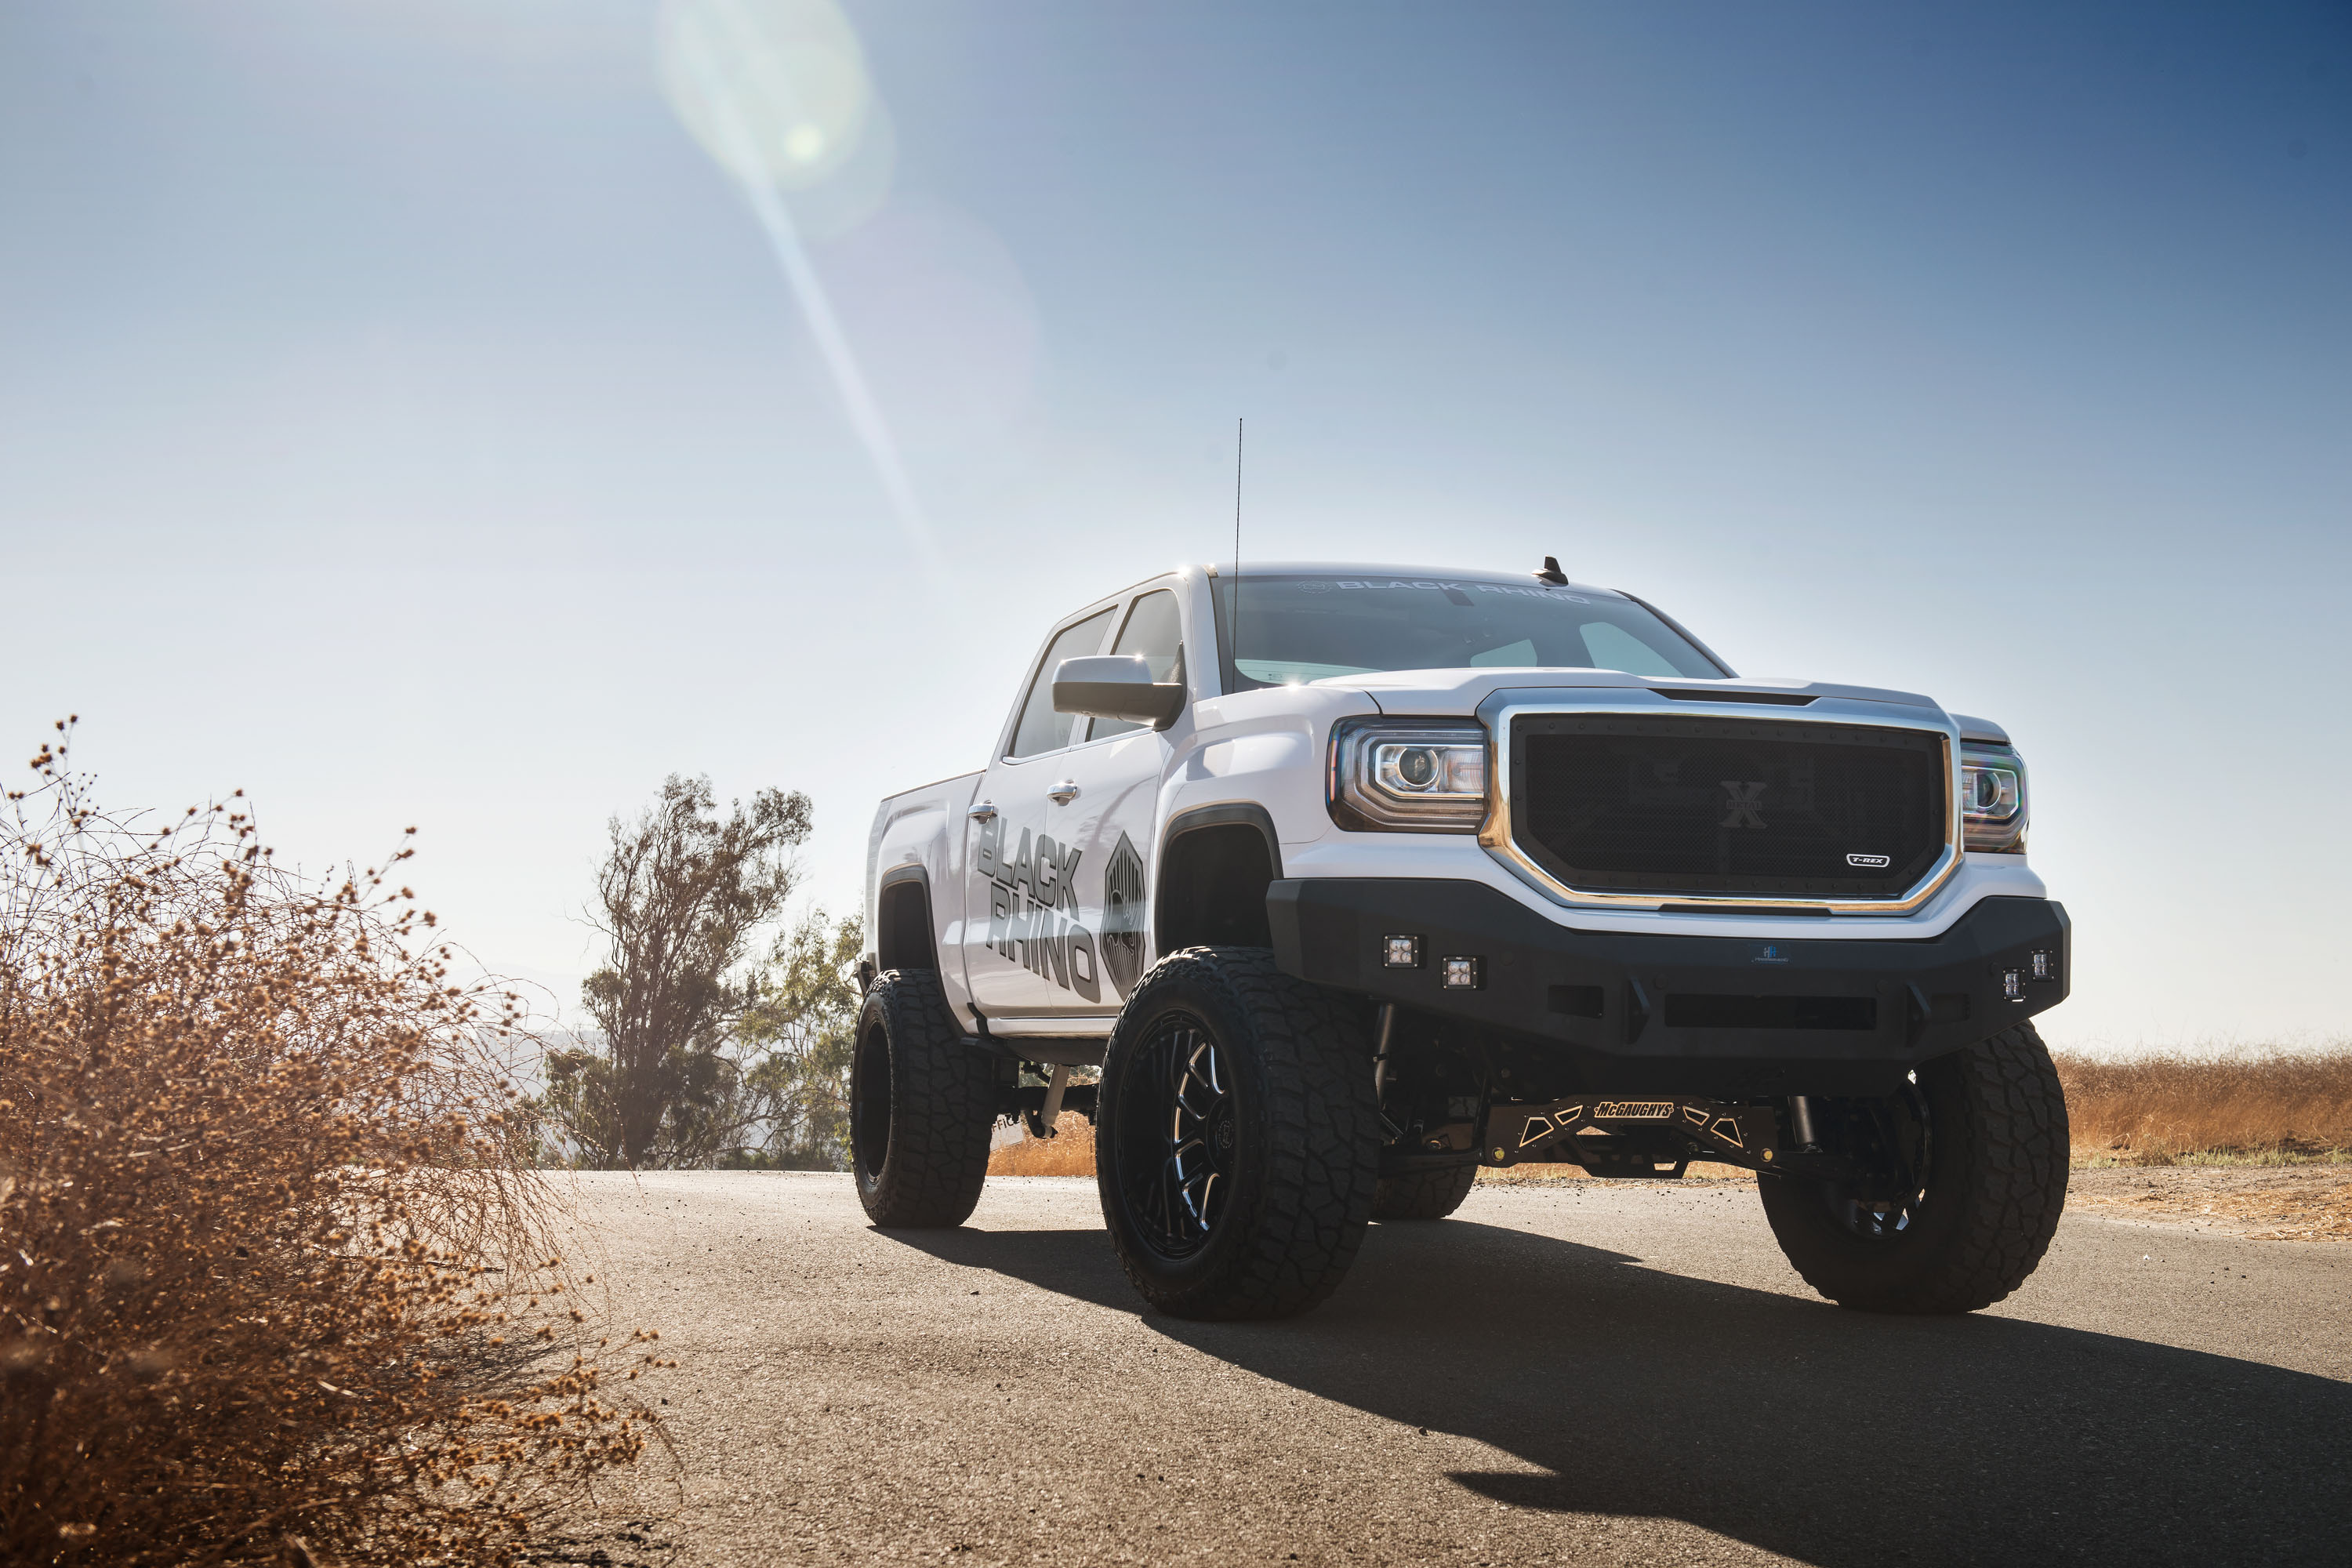 Toyota Of El Cajon >> Photos of Black Rhino Wheels For Truck and Truck